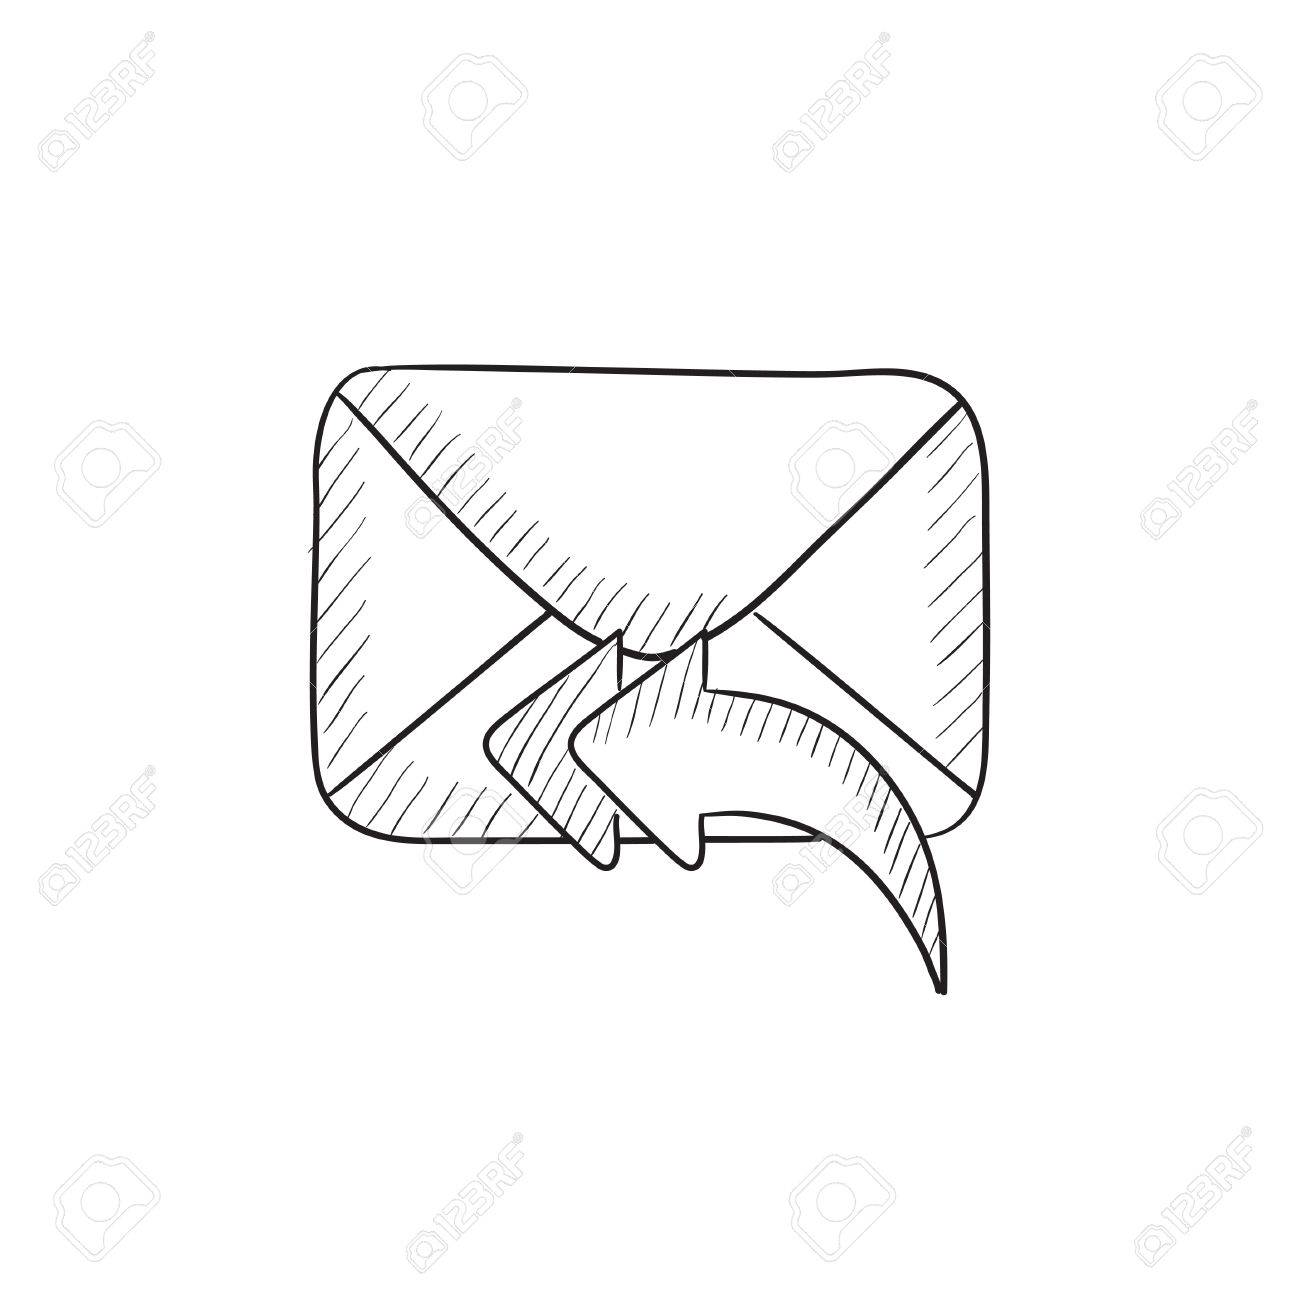 1300x1300 Sending Email Vector Sketch Icon Isolated On Background. Hand